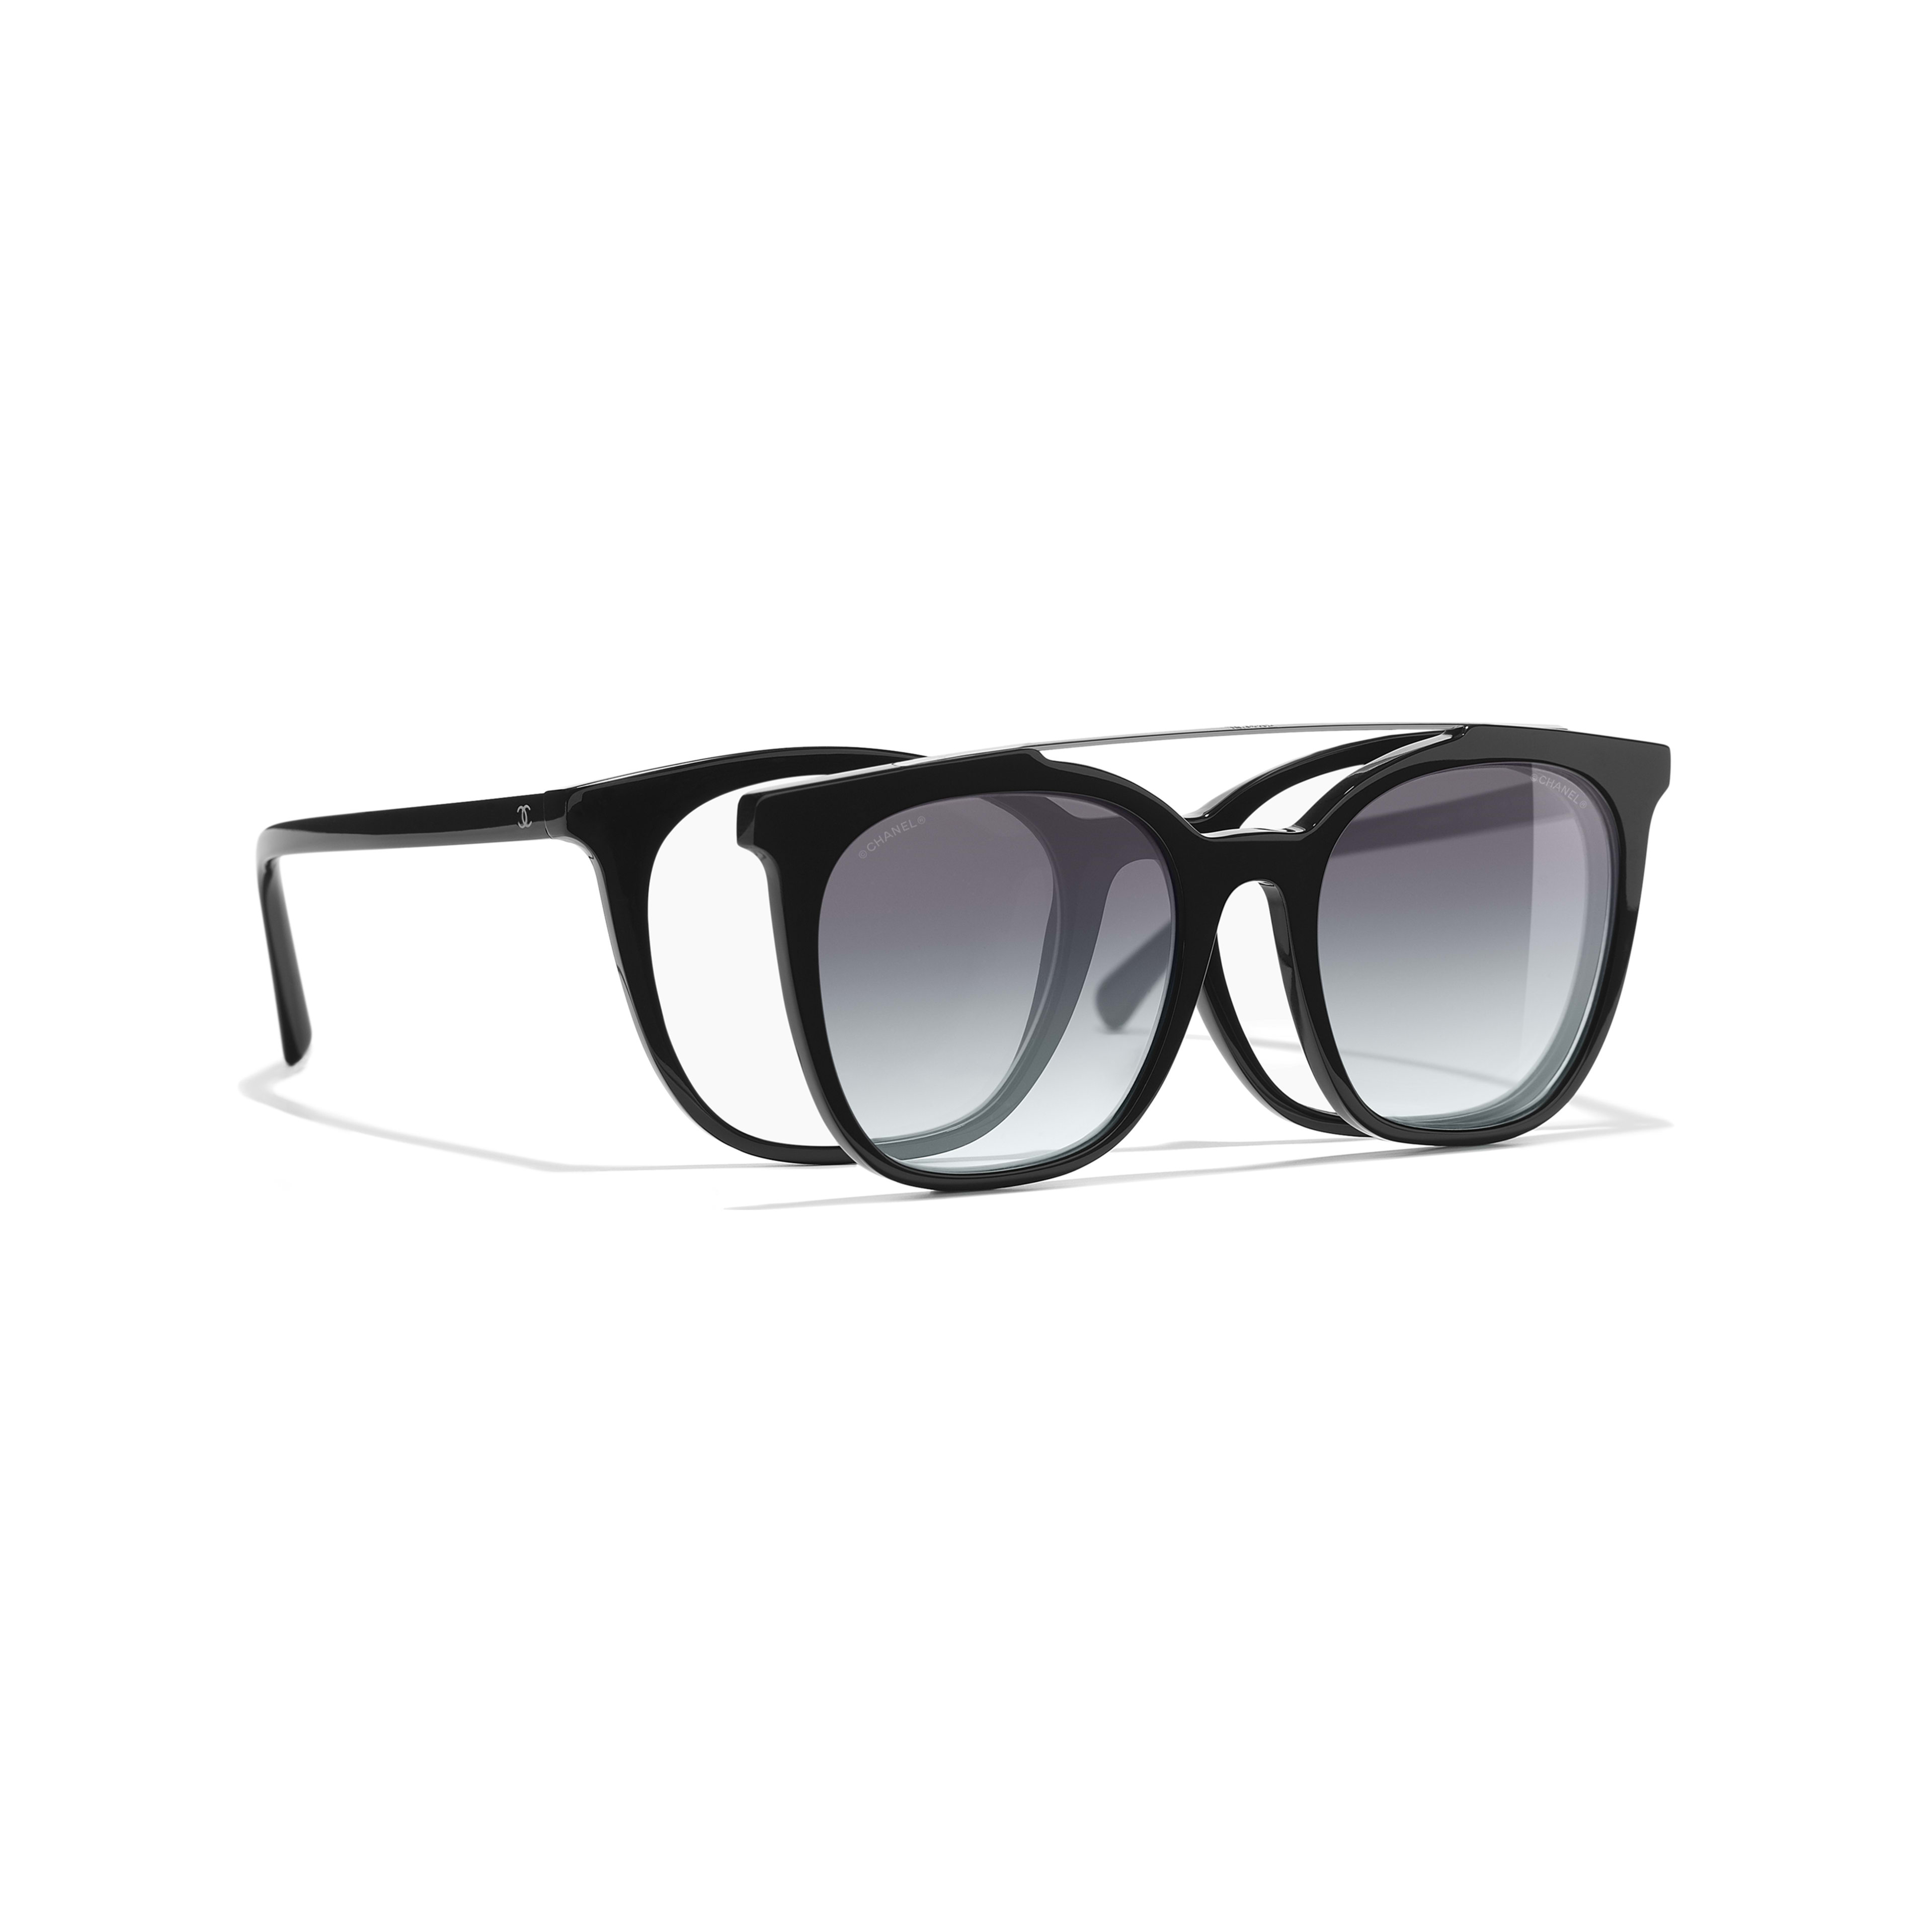 Clip on Sunglasses Acetate & Metal Black -                                               view 1 - see full sized version